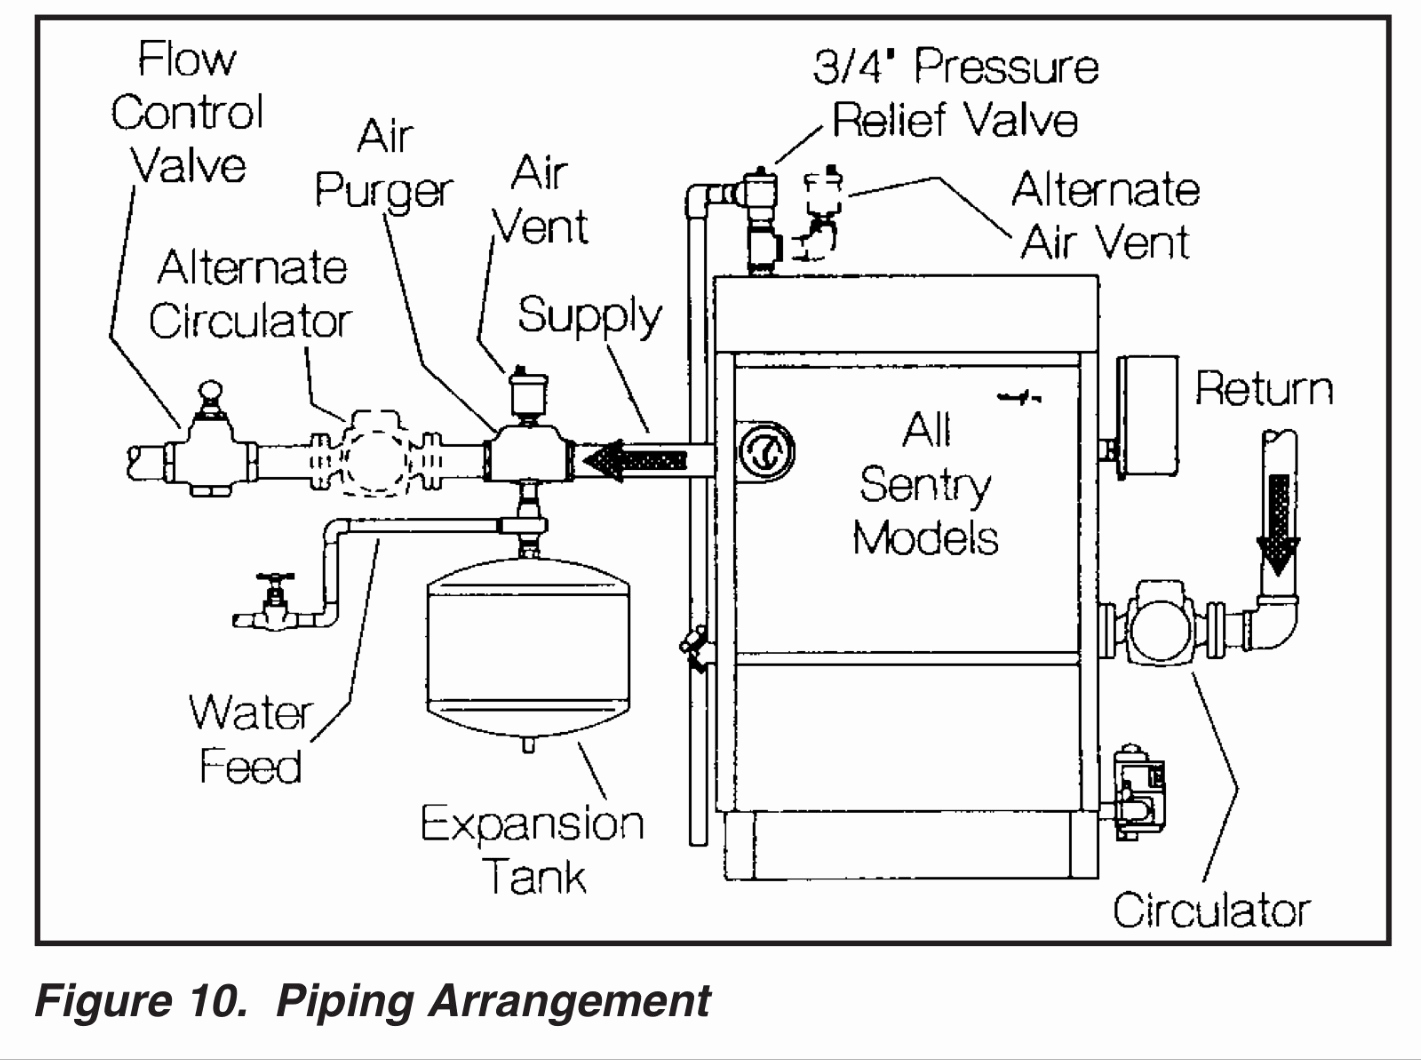 taco cartridge circulator 007 f5 wiring diagram collection